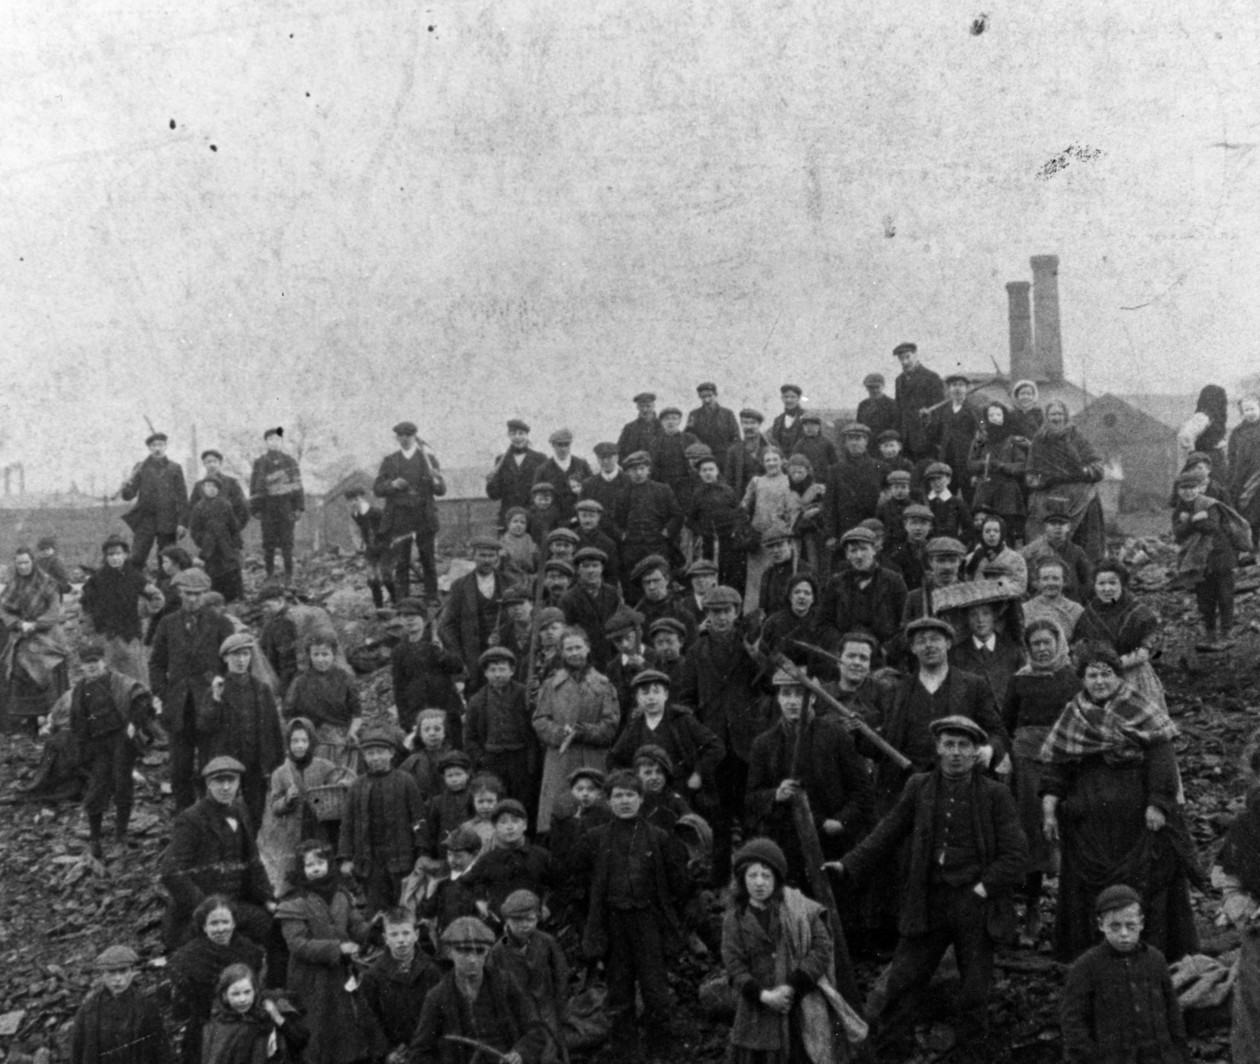 Working Lives in the Coal Mines: Mining History and Heritage